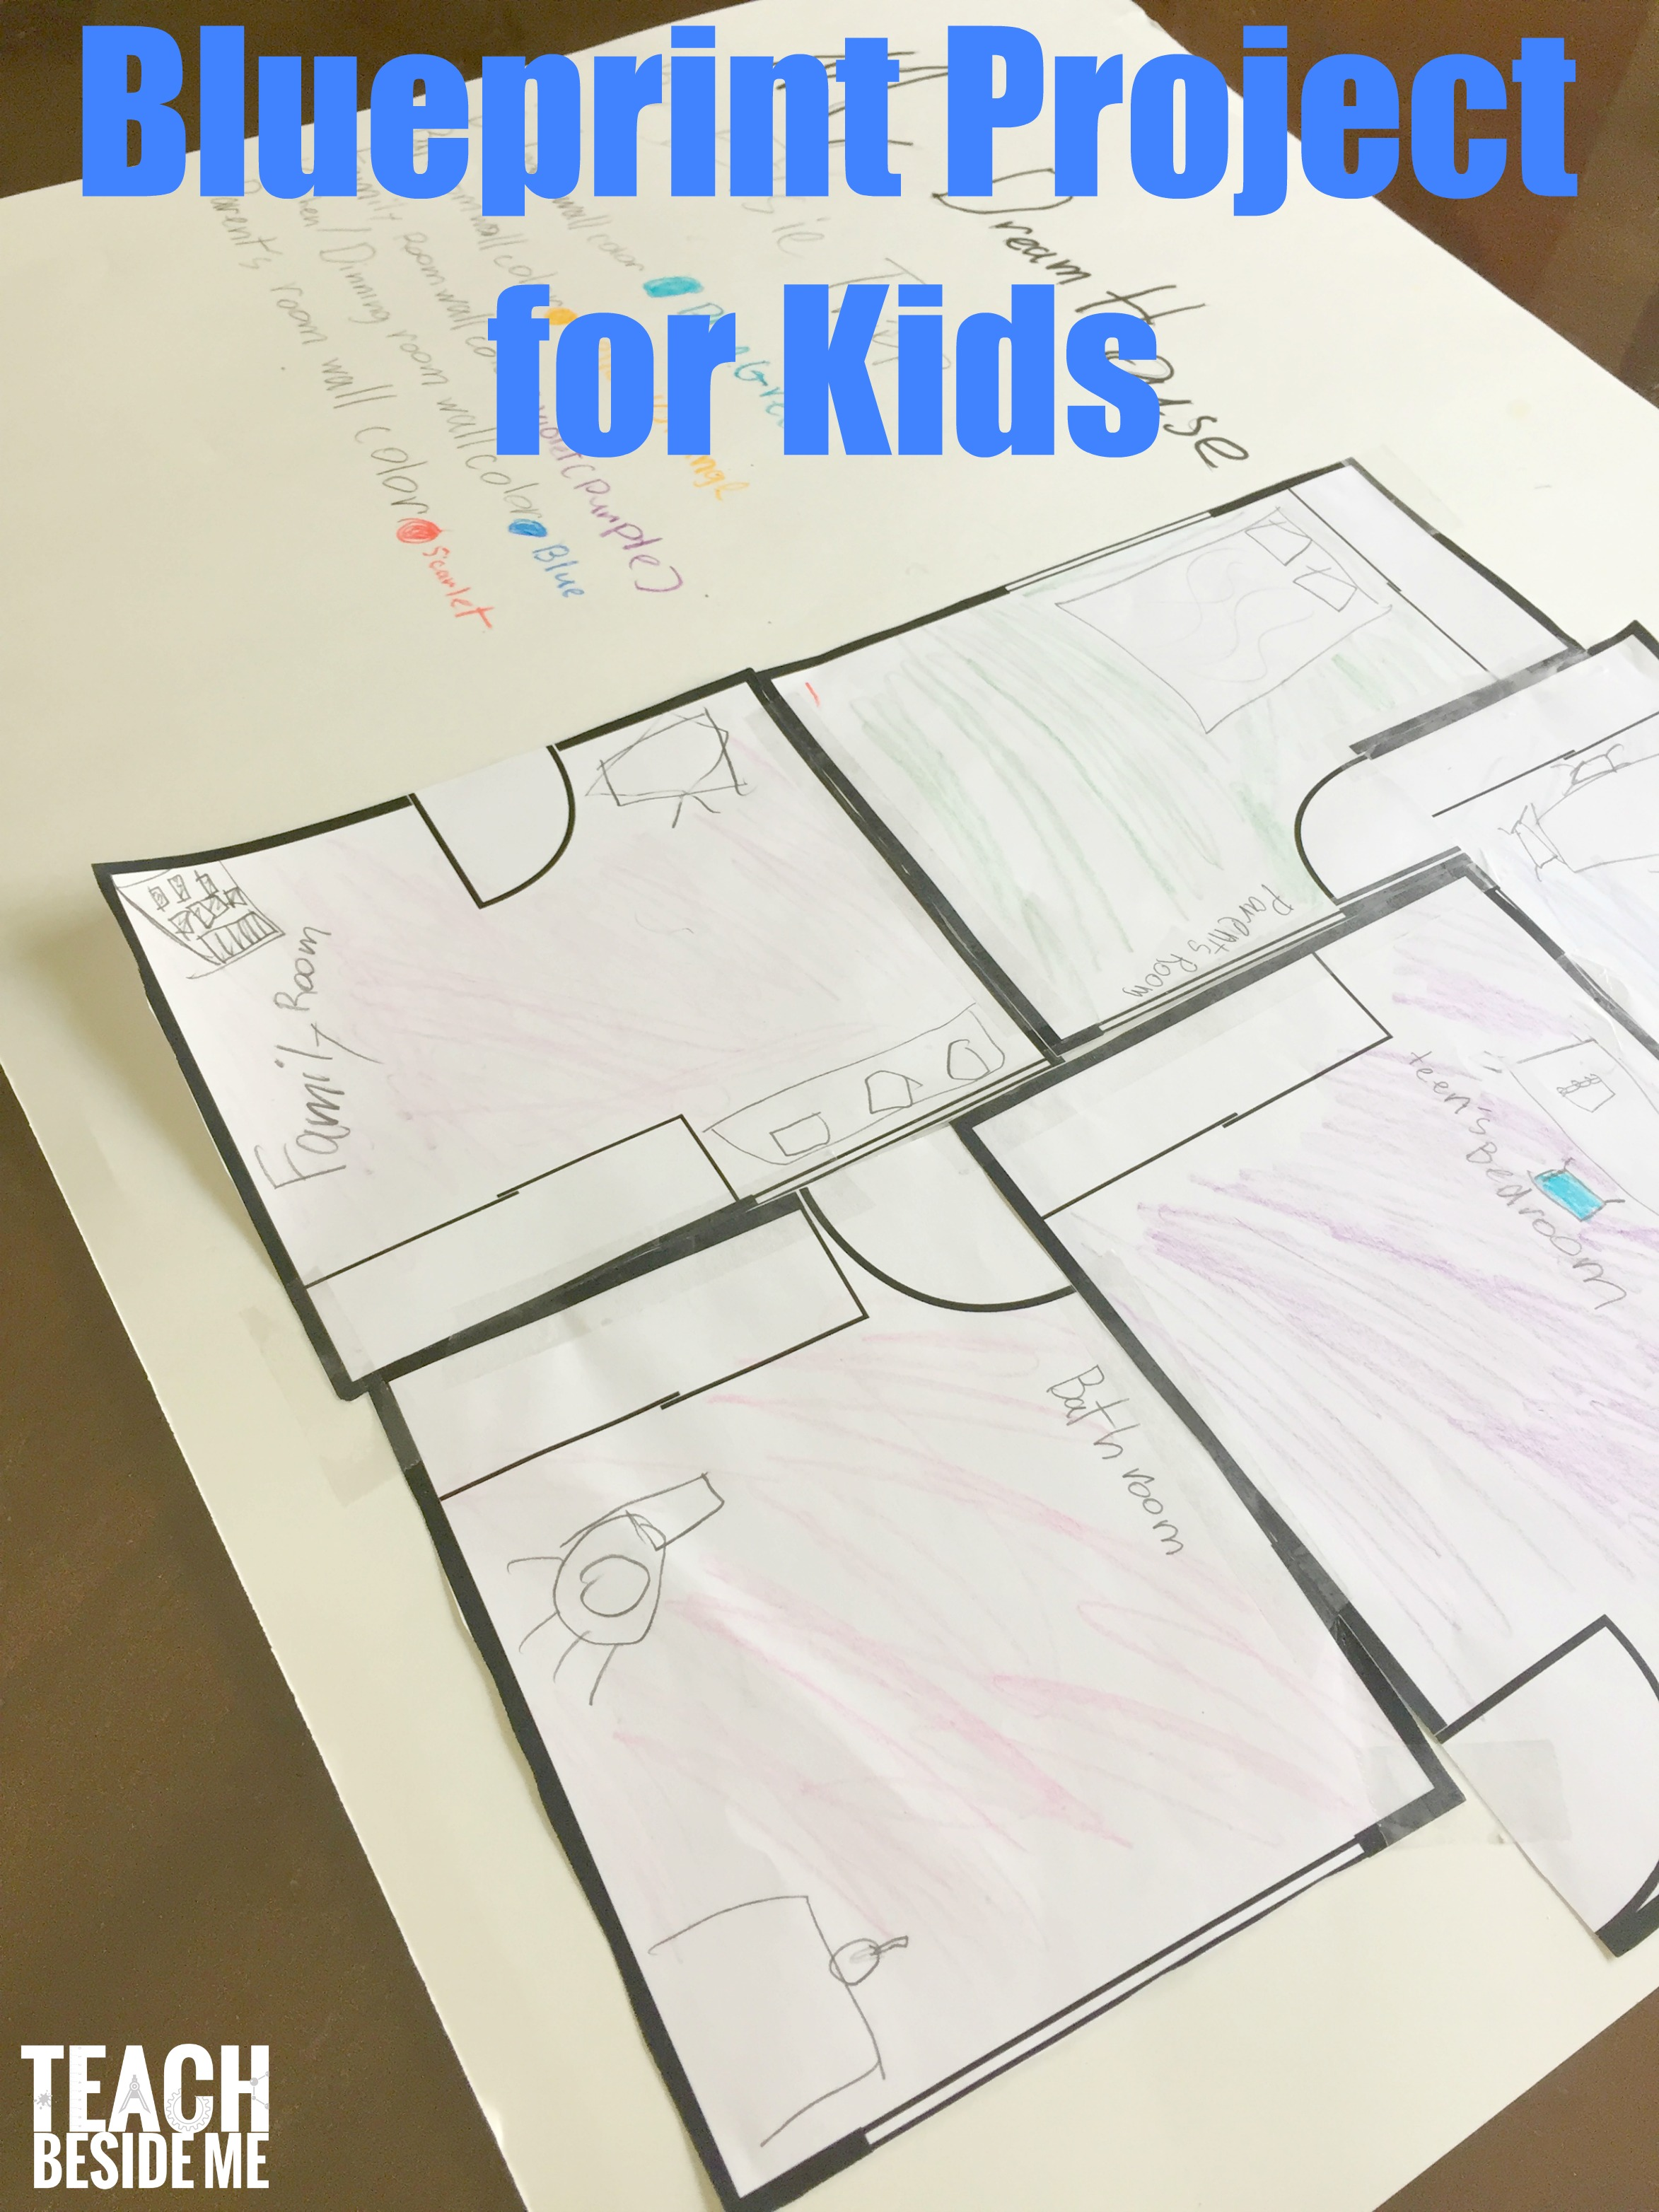 blueprints and architecture for kids inspired by frank lloyd wright teach beside me. Black Bedroom Furniture Sets. Home Design Ideas